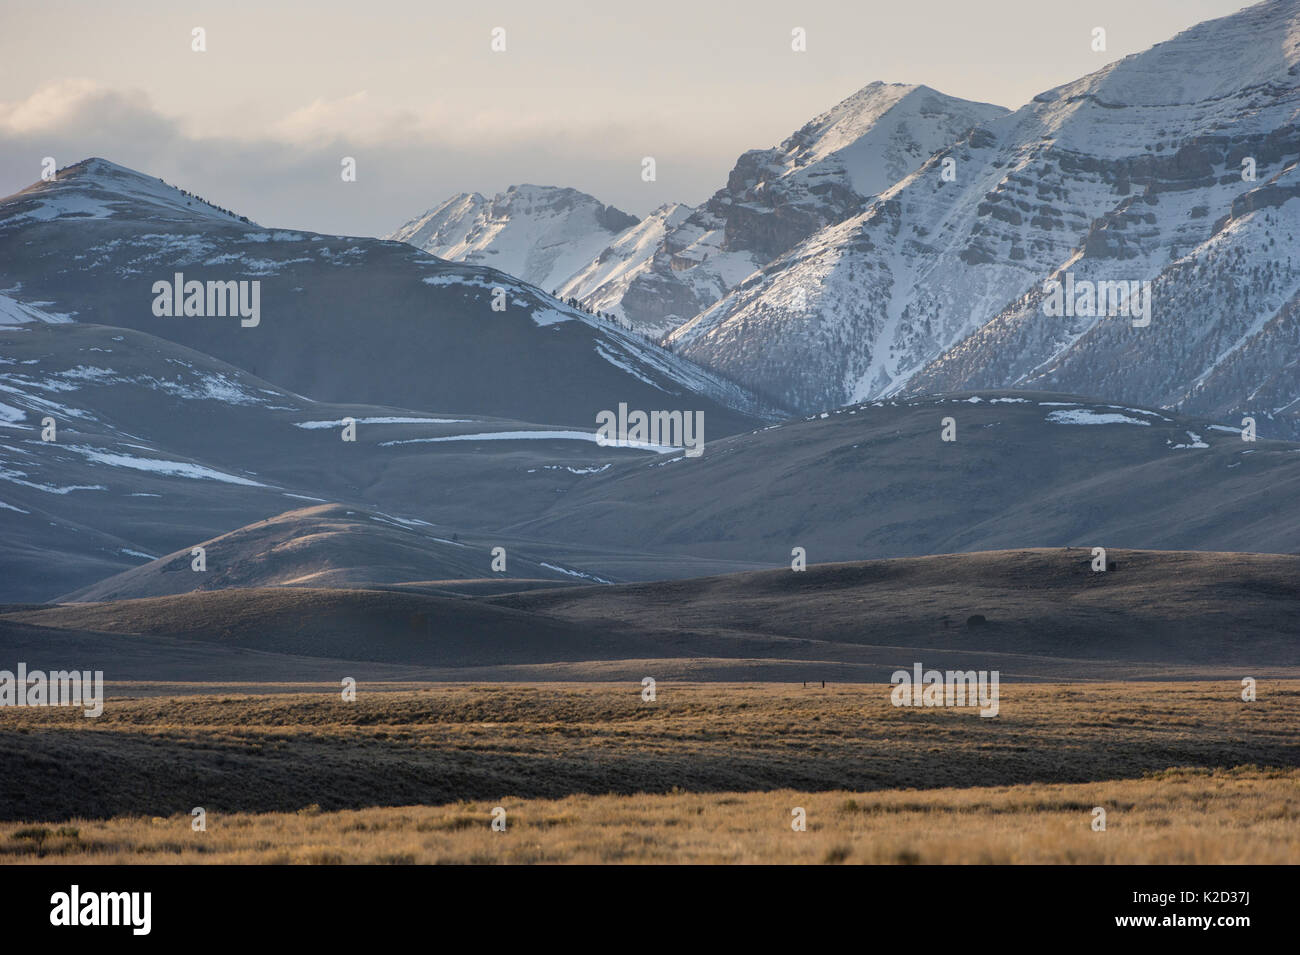 Sagebrush-steppe at the foot of the Sawtooth Mountains. Clark County, Idaho, USA, April 2012. - Stock Image